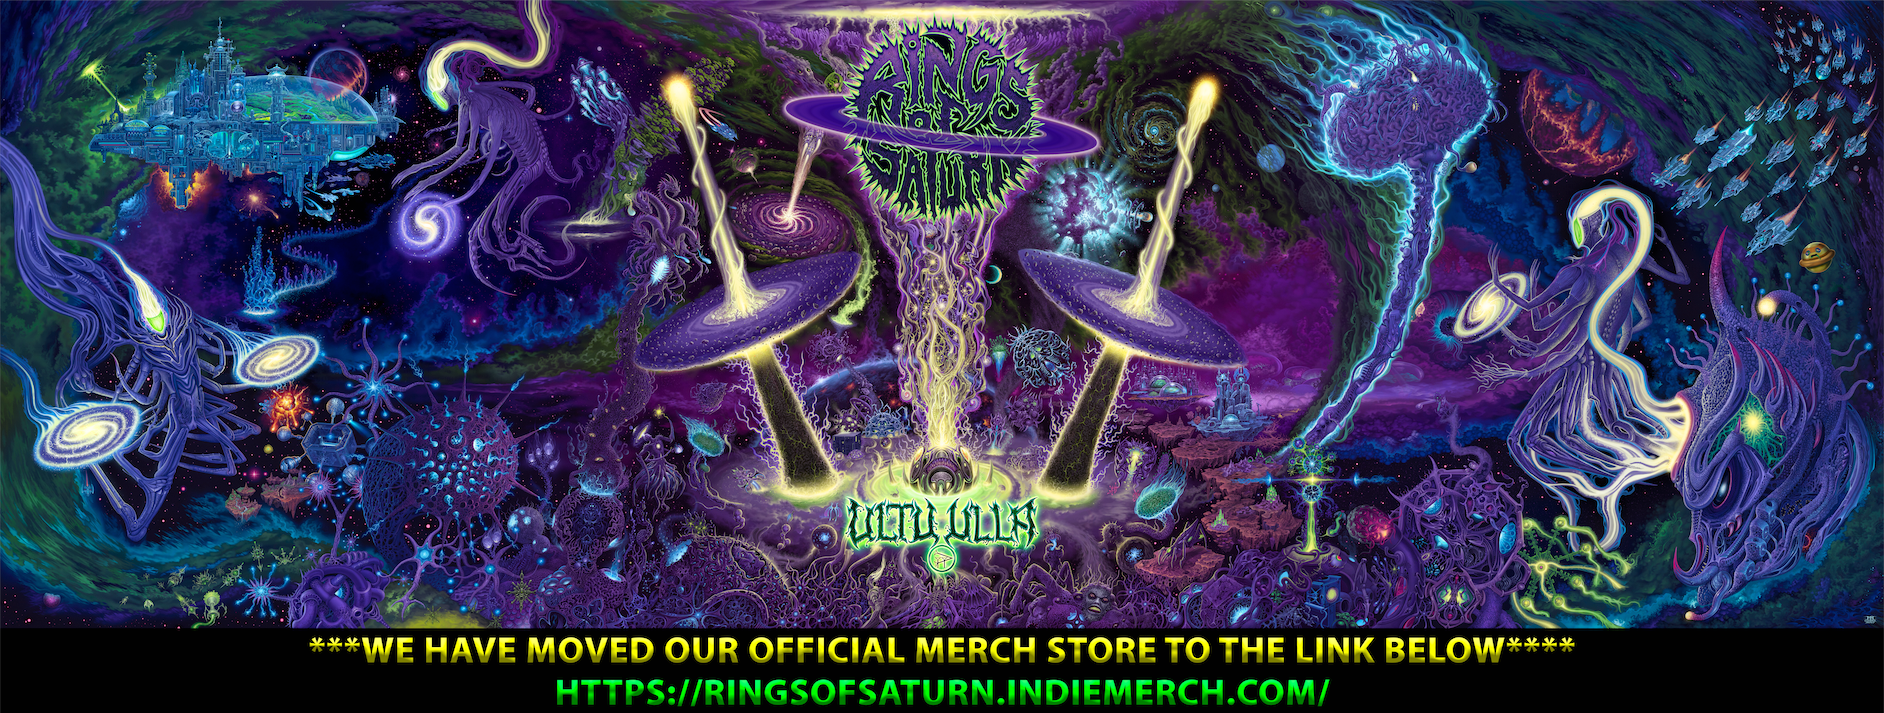 Rings of Saturn Official Merchandise Store